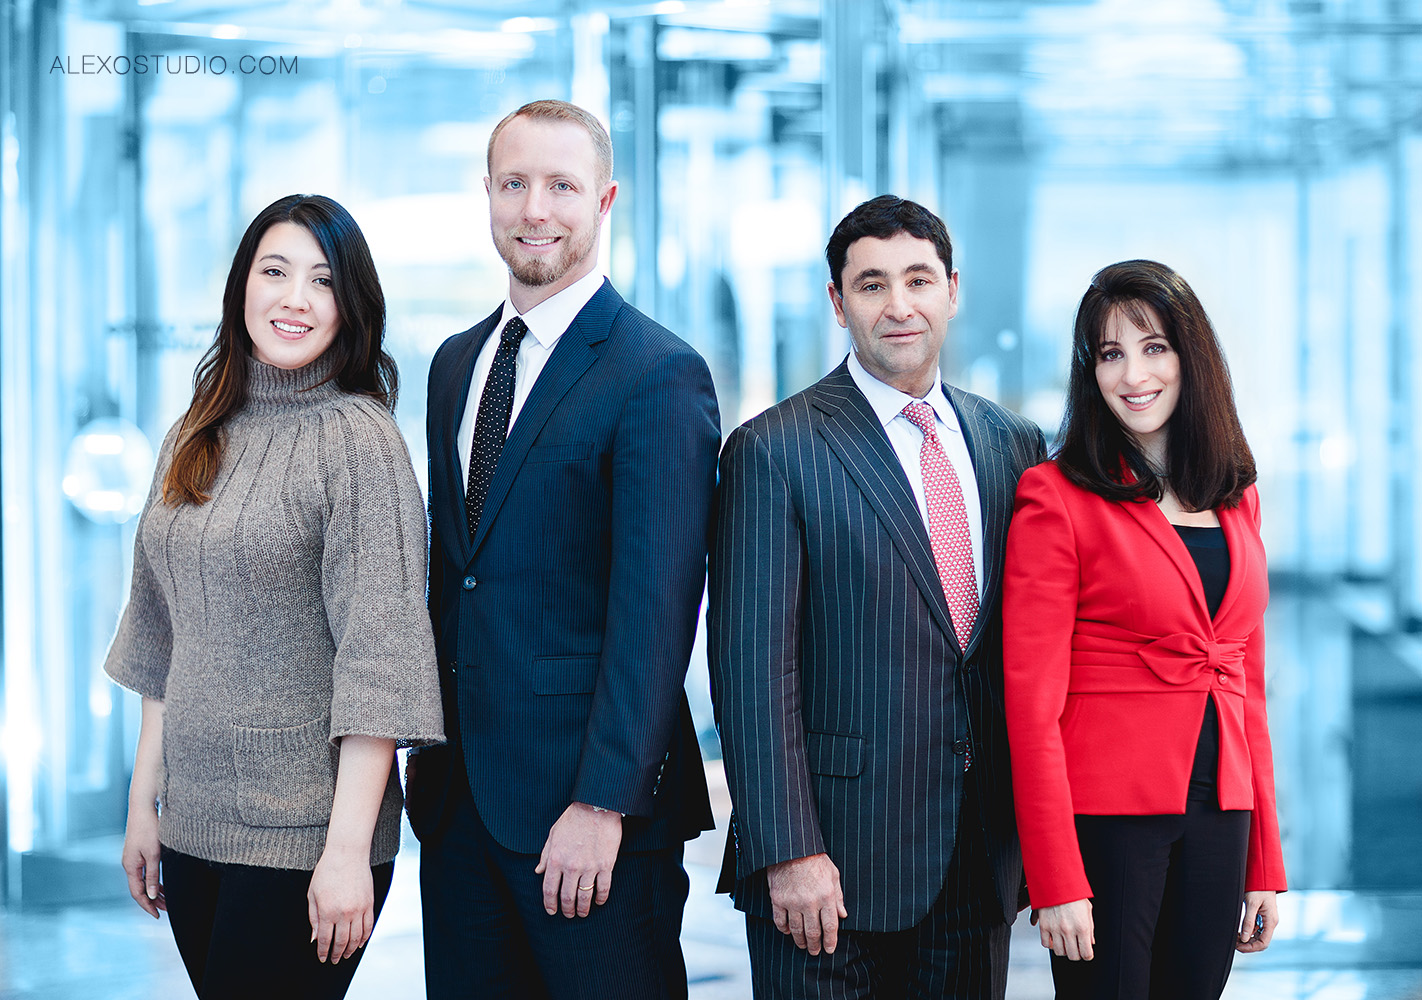 denver-corporate-group-portrait-merrill-lynch.jpg